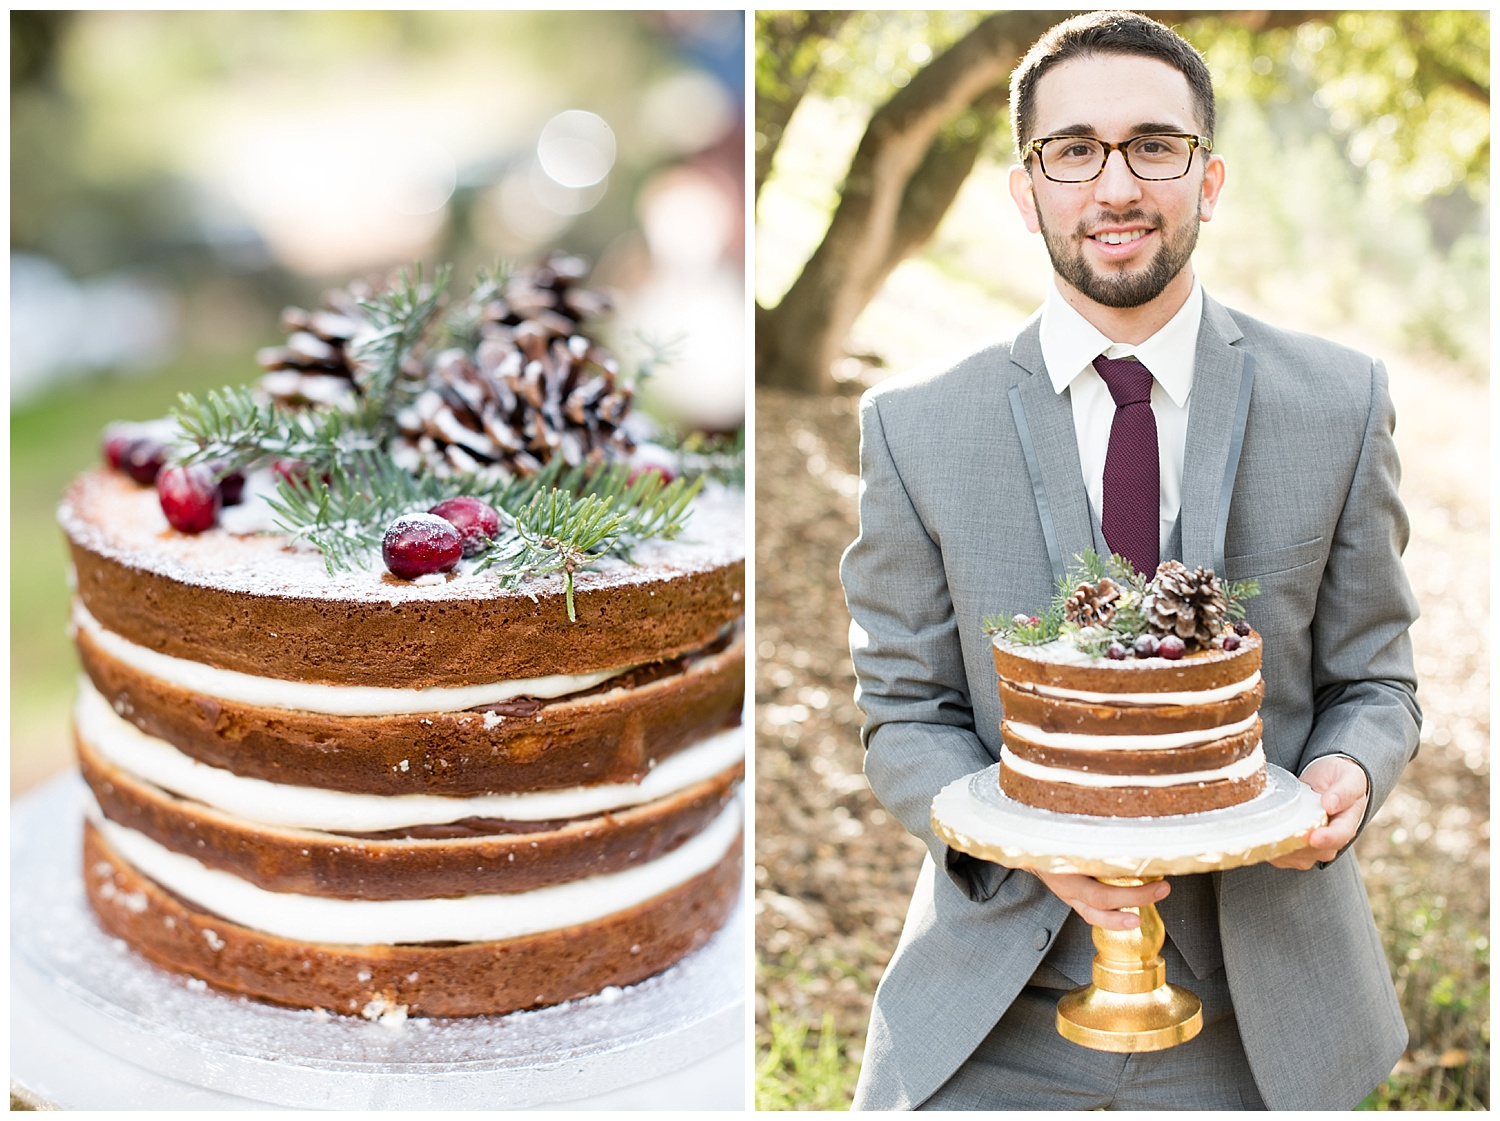 winter-christmas-wedding-cake-with-groom.jpg